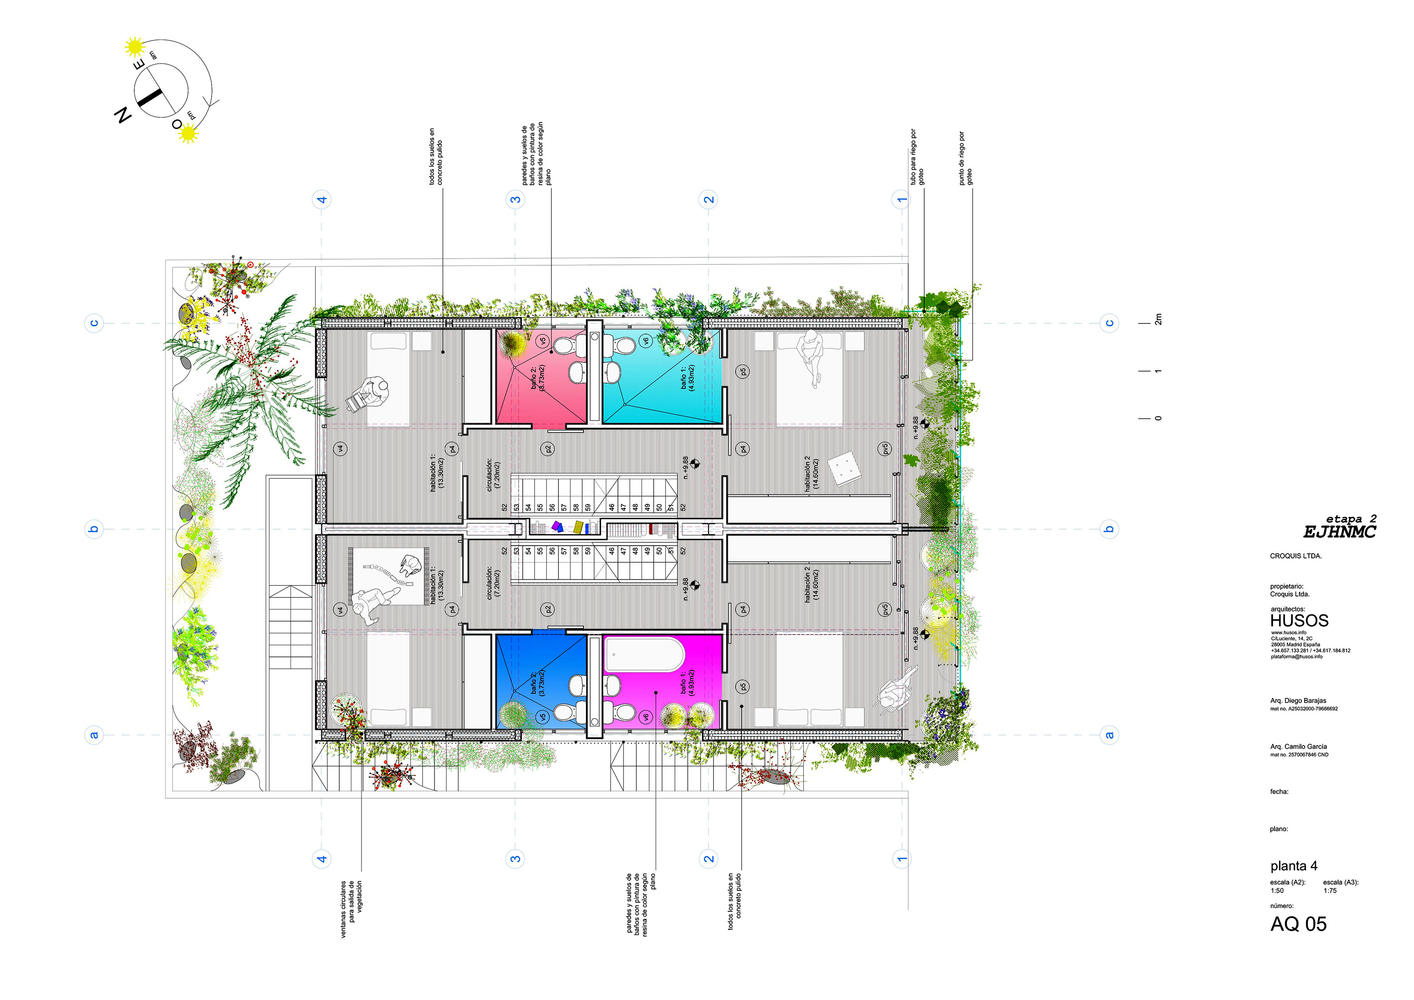 Great Bioclimatic Prototype Of A Host And Nectar Garden Building,Fourth Floor Plan